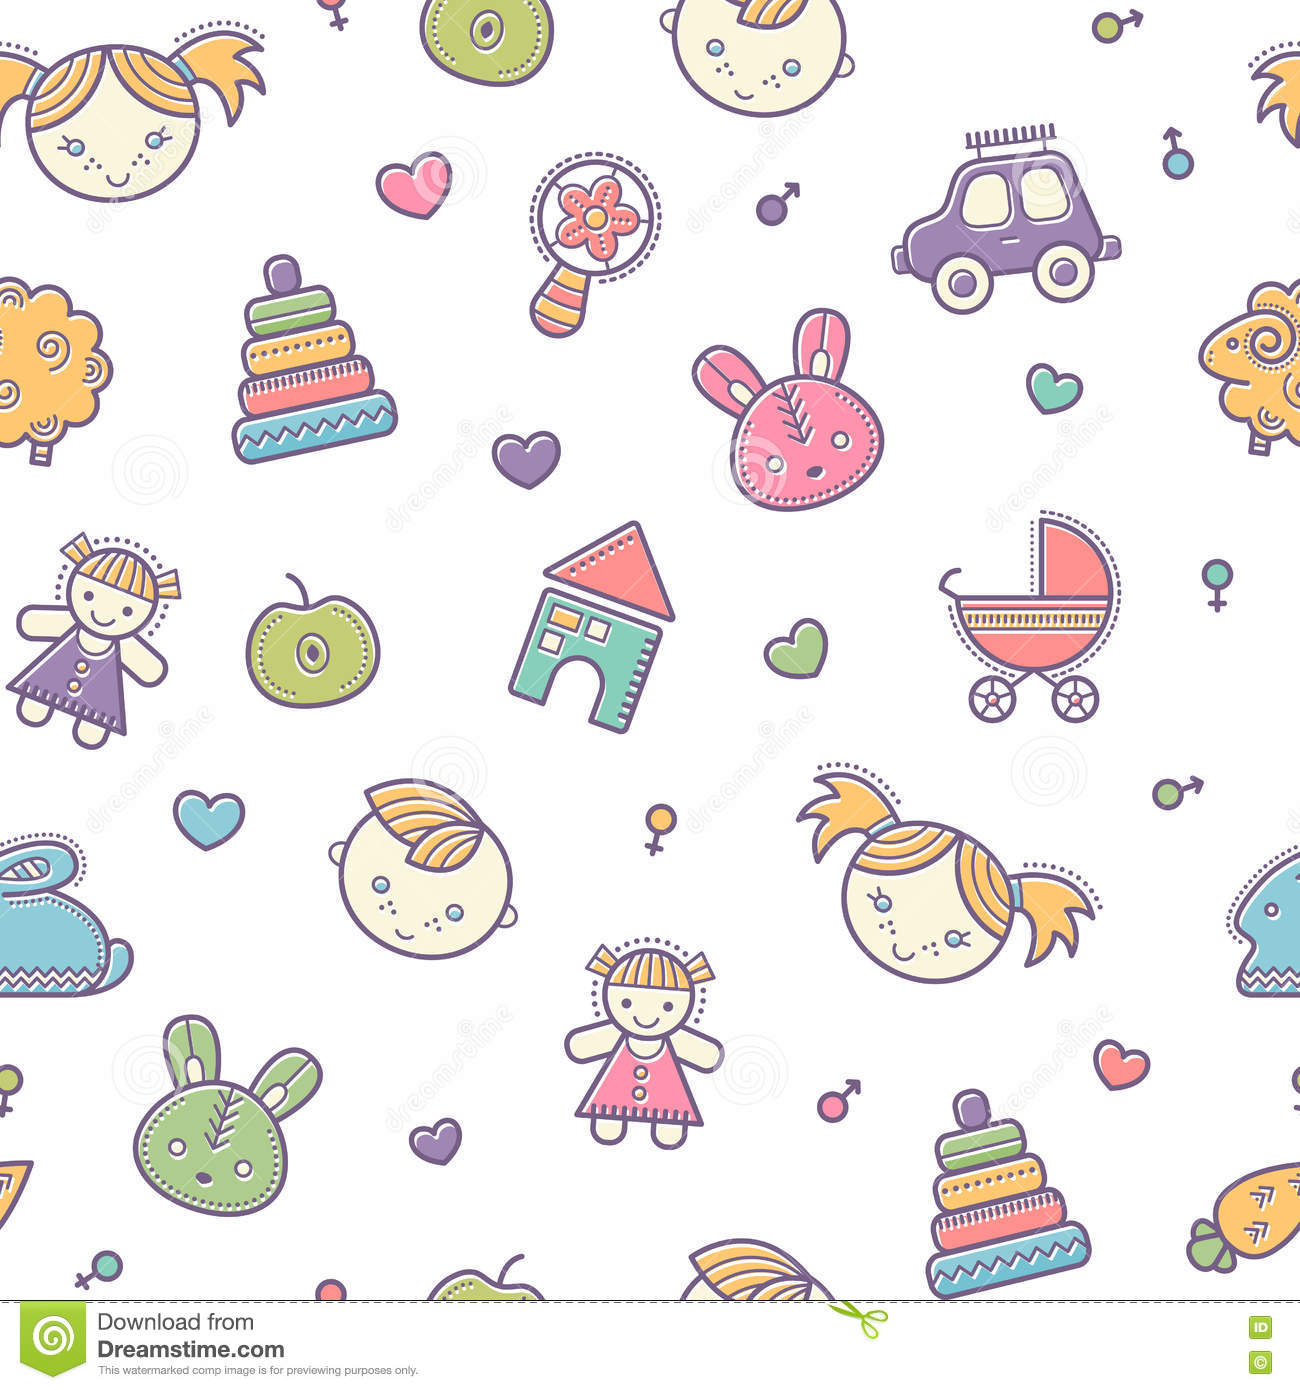 Seamless baby pattern with colorful babyish elements